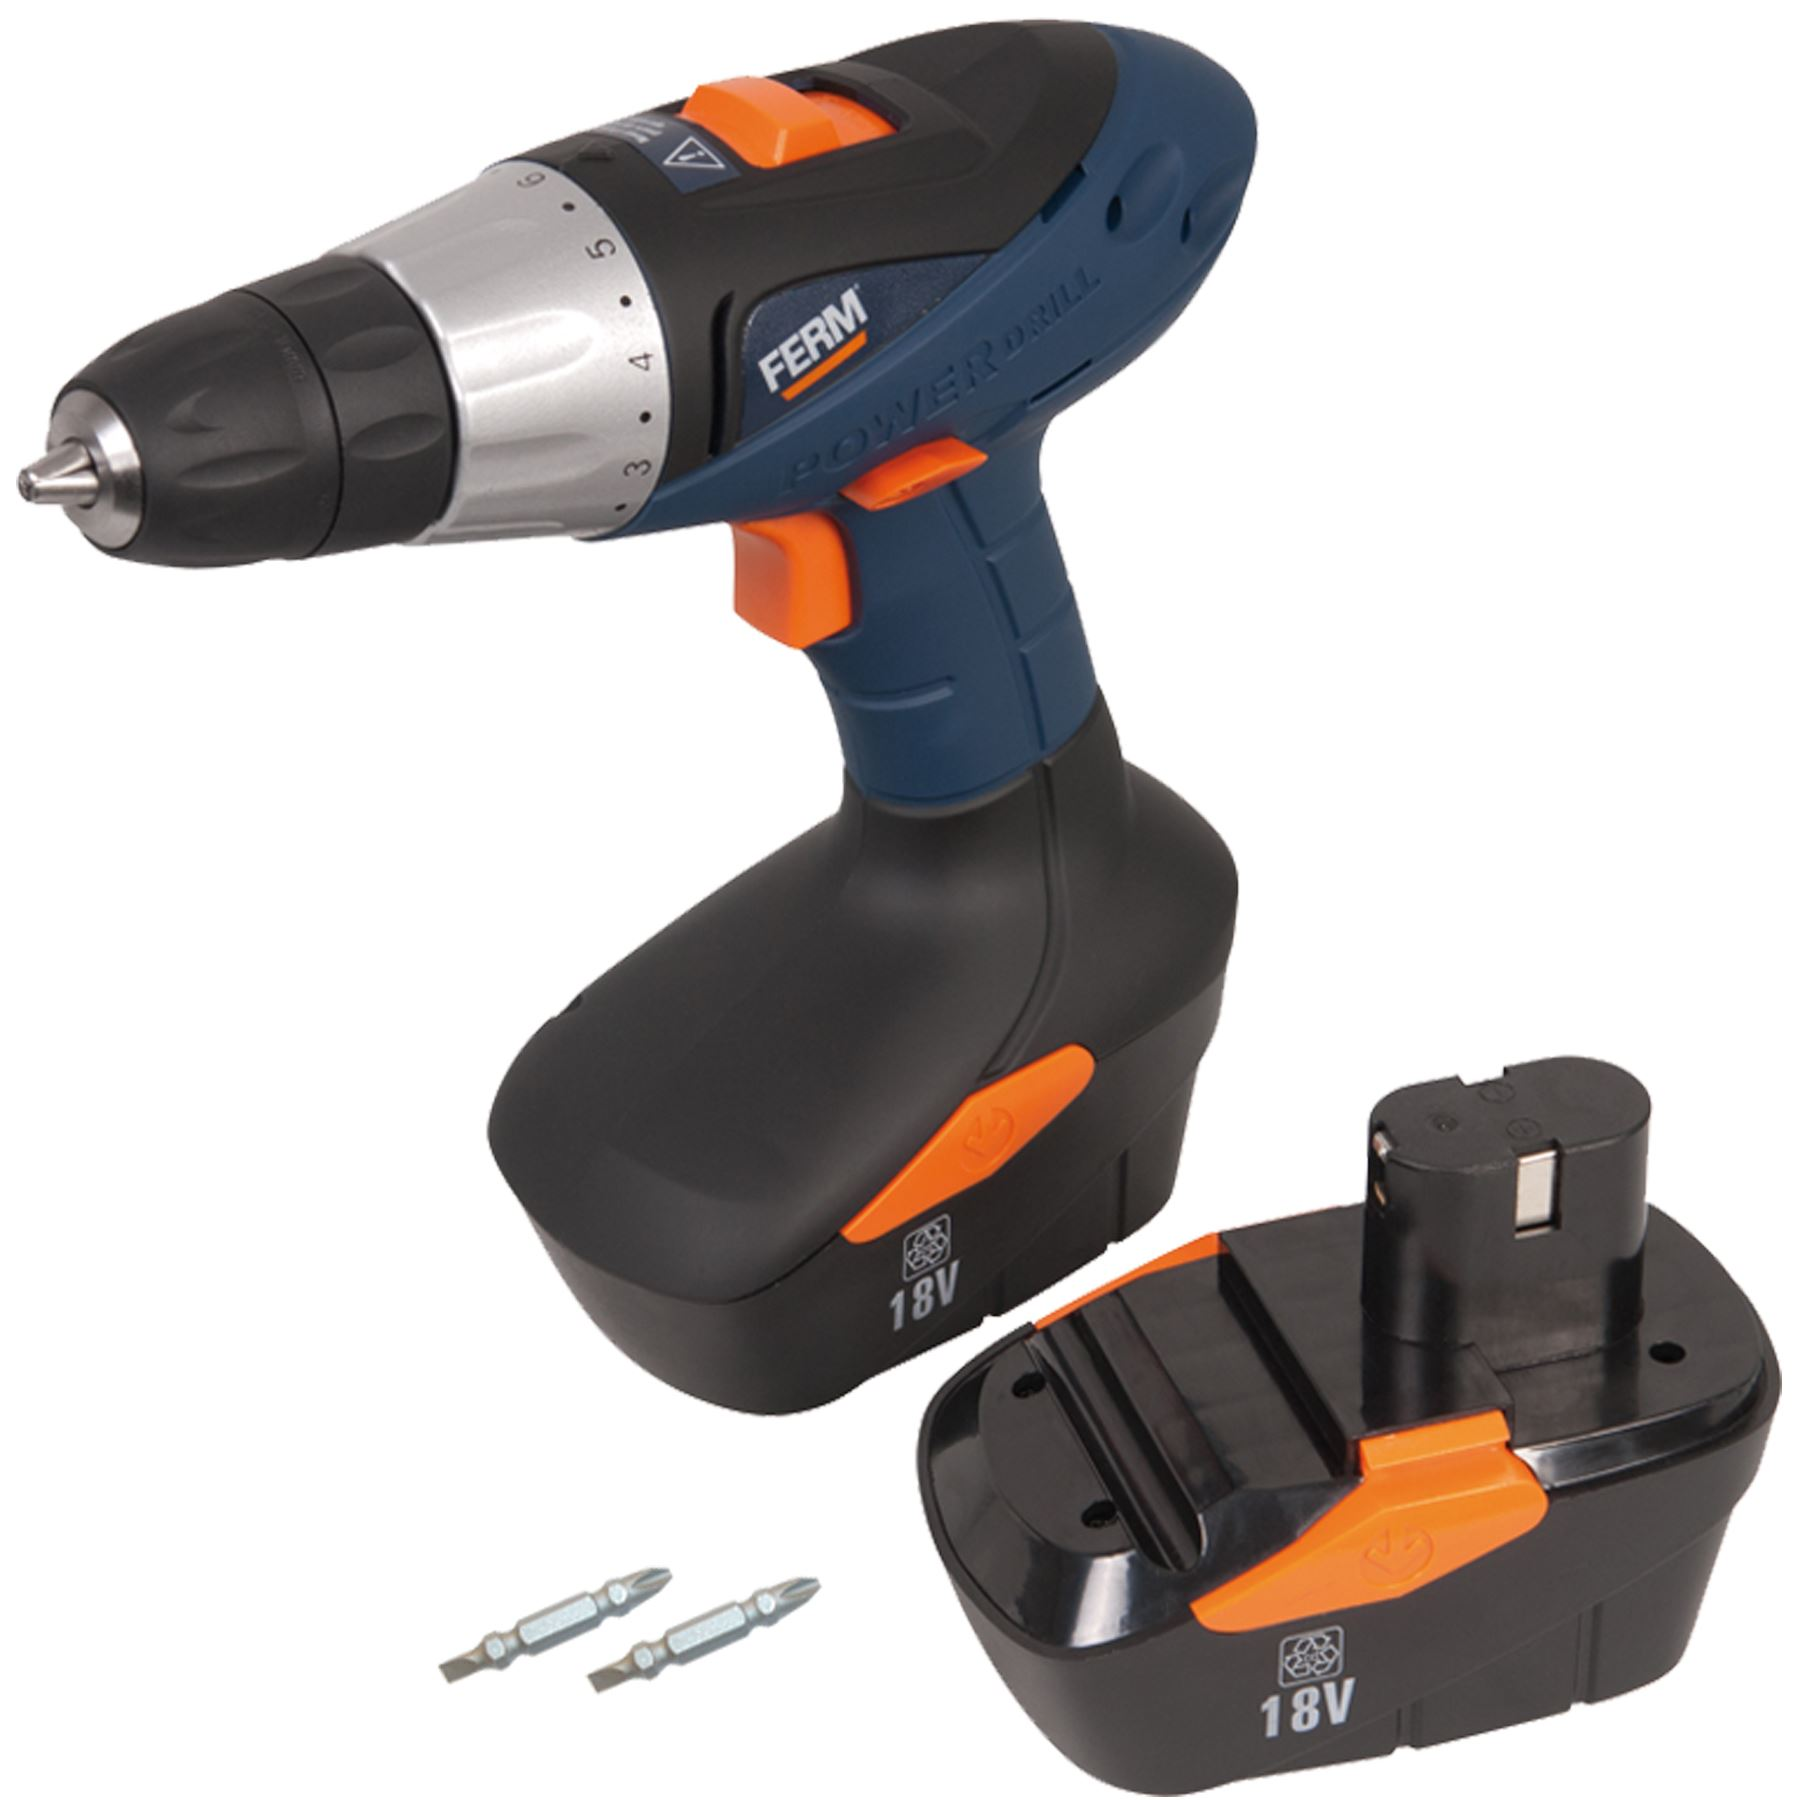 Ferm Power 18v Cordless Drill With Bundled Items Variable Speed